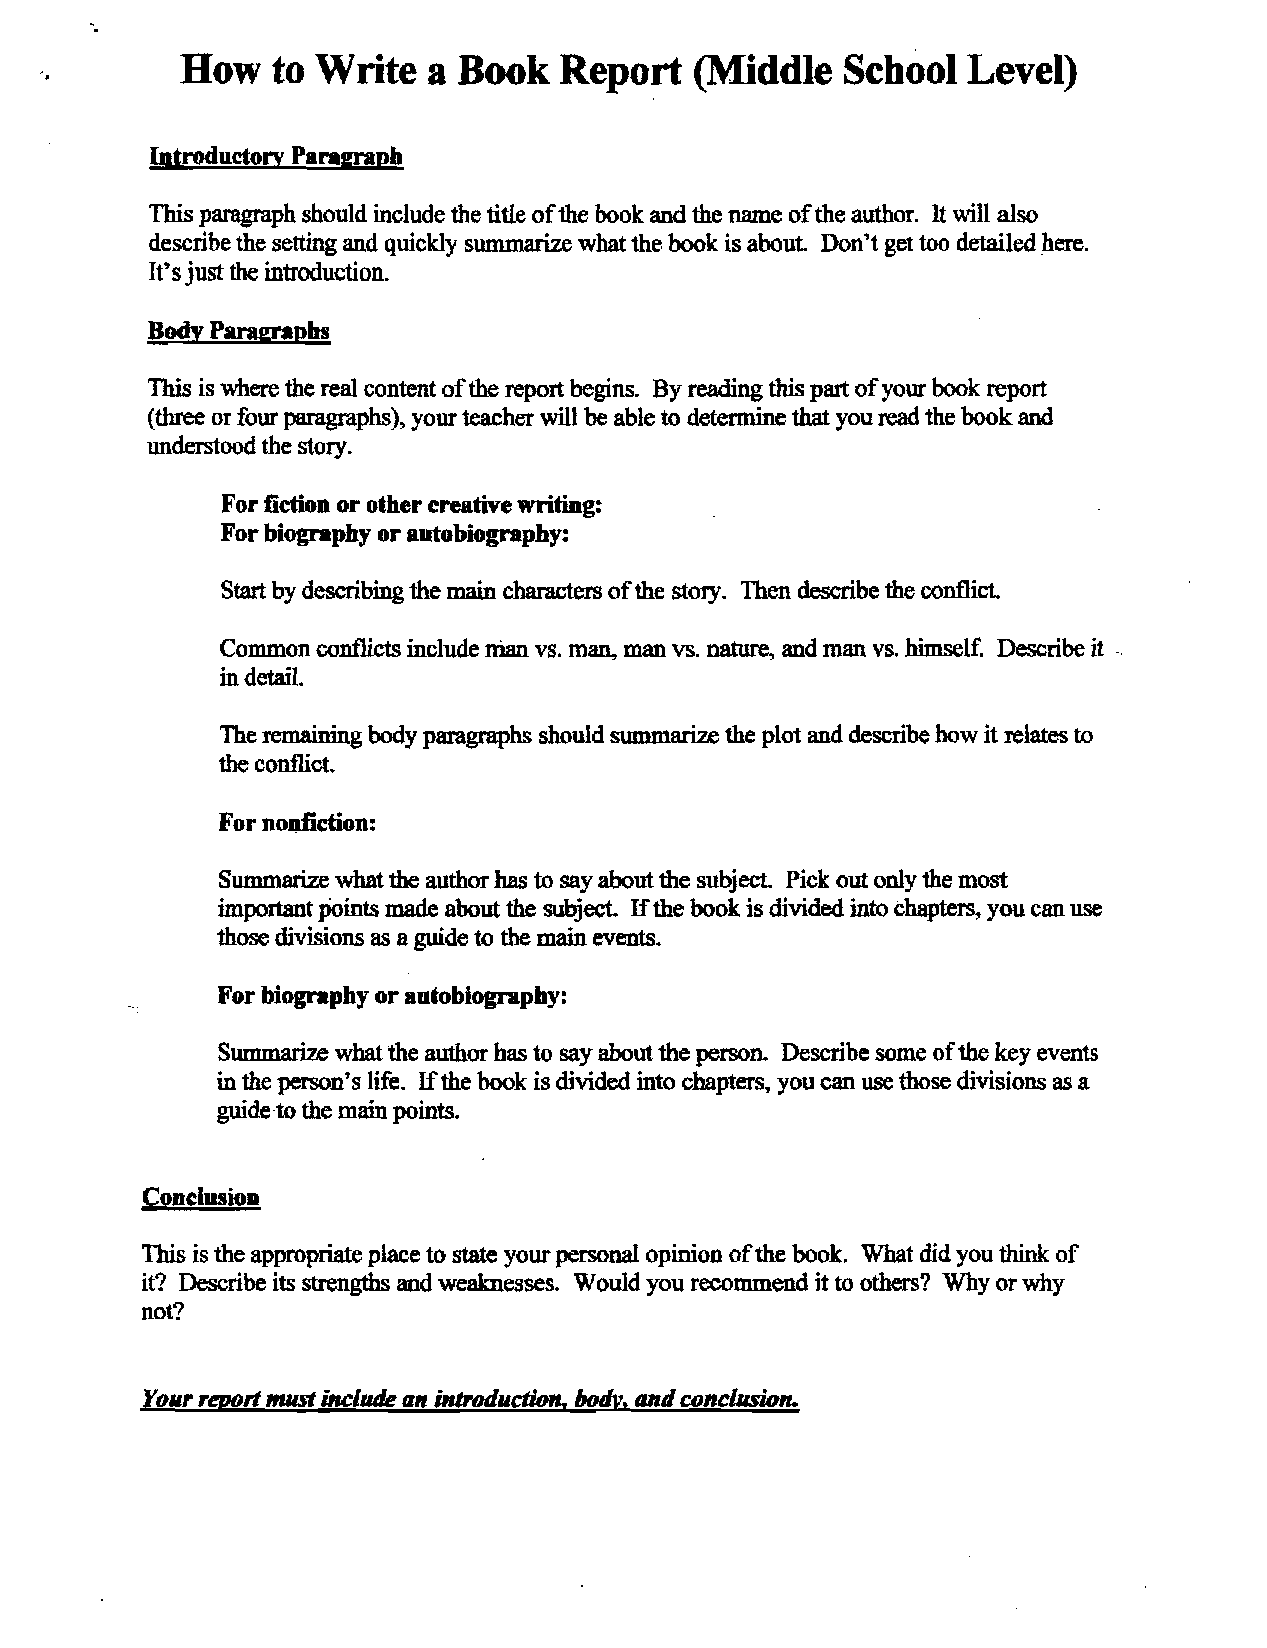 015 Canterbury Tales Essay Research Paper Topics Prologue Questions Outline Examples20 Middle Phenomenal School Science Civil War Topic Full